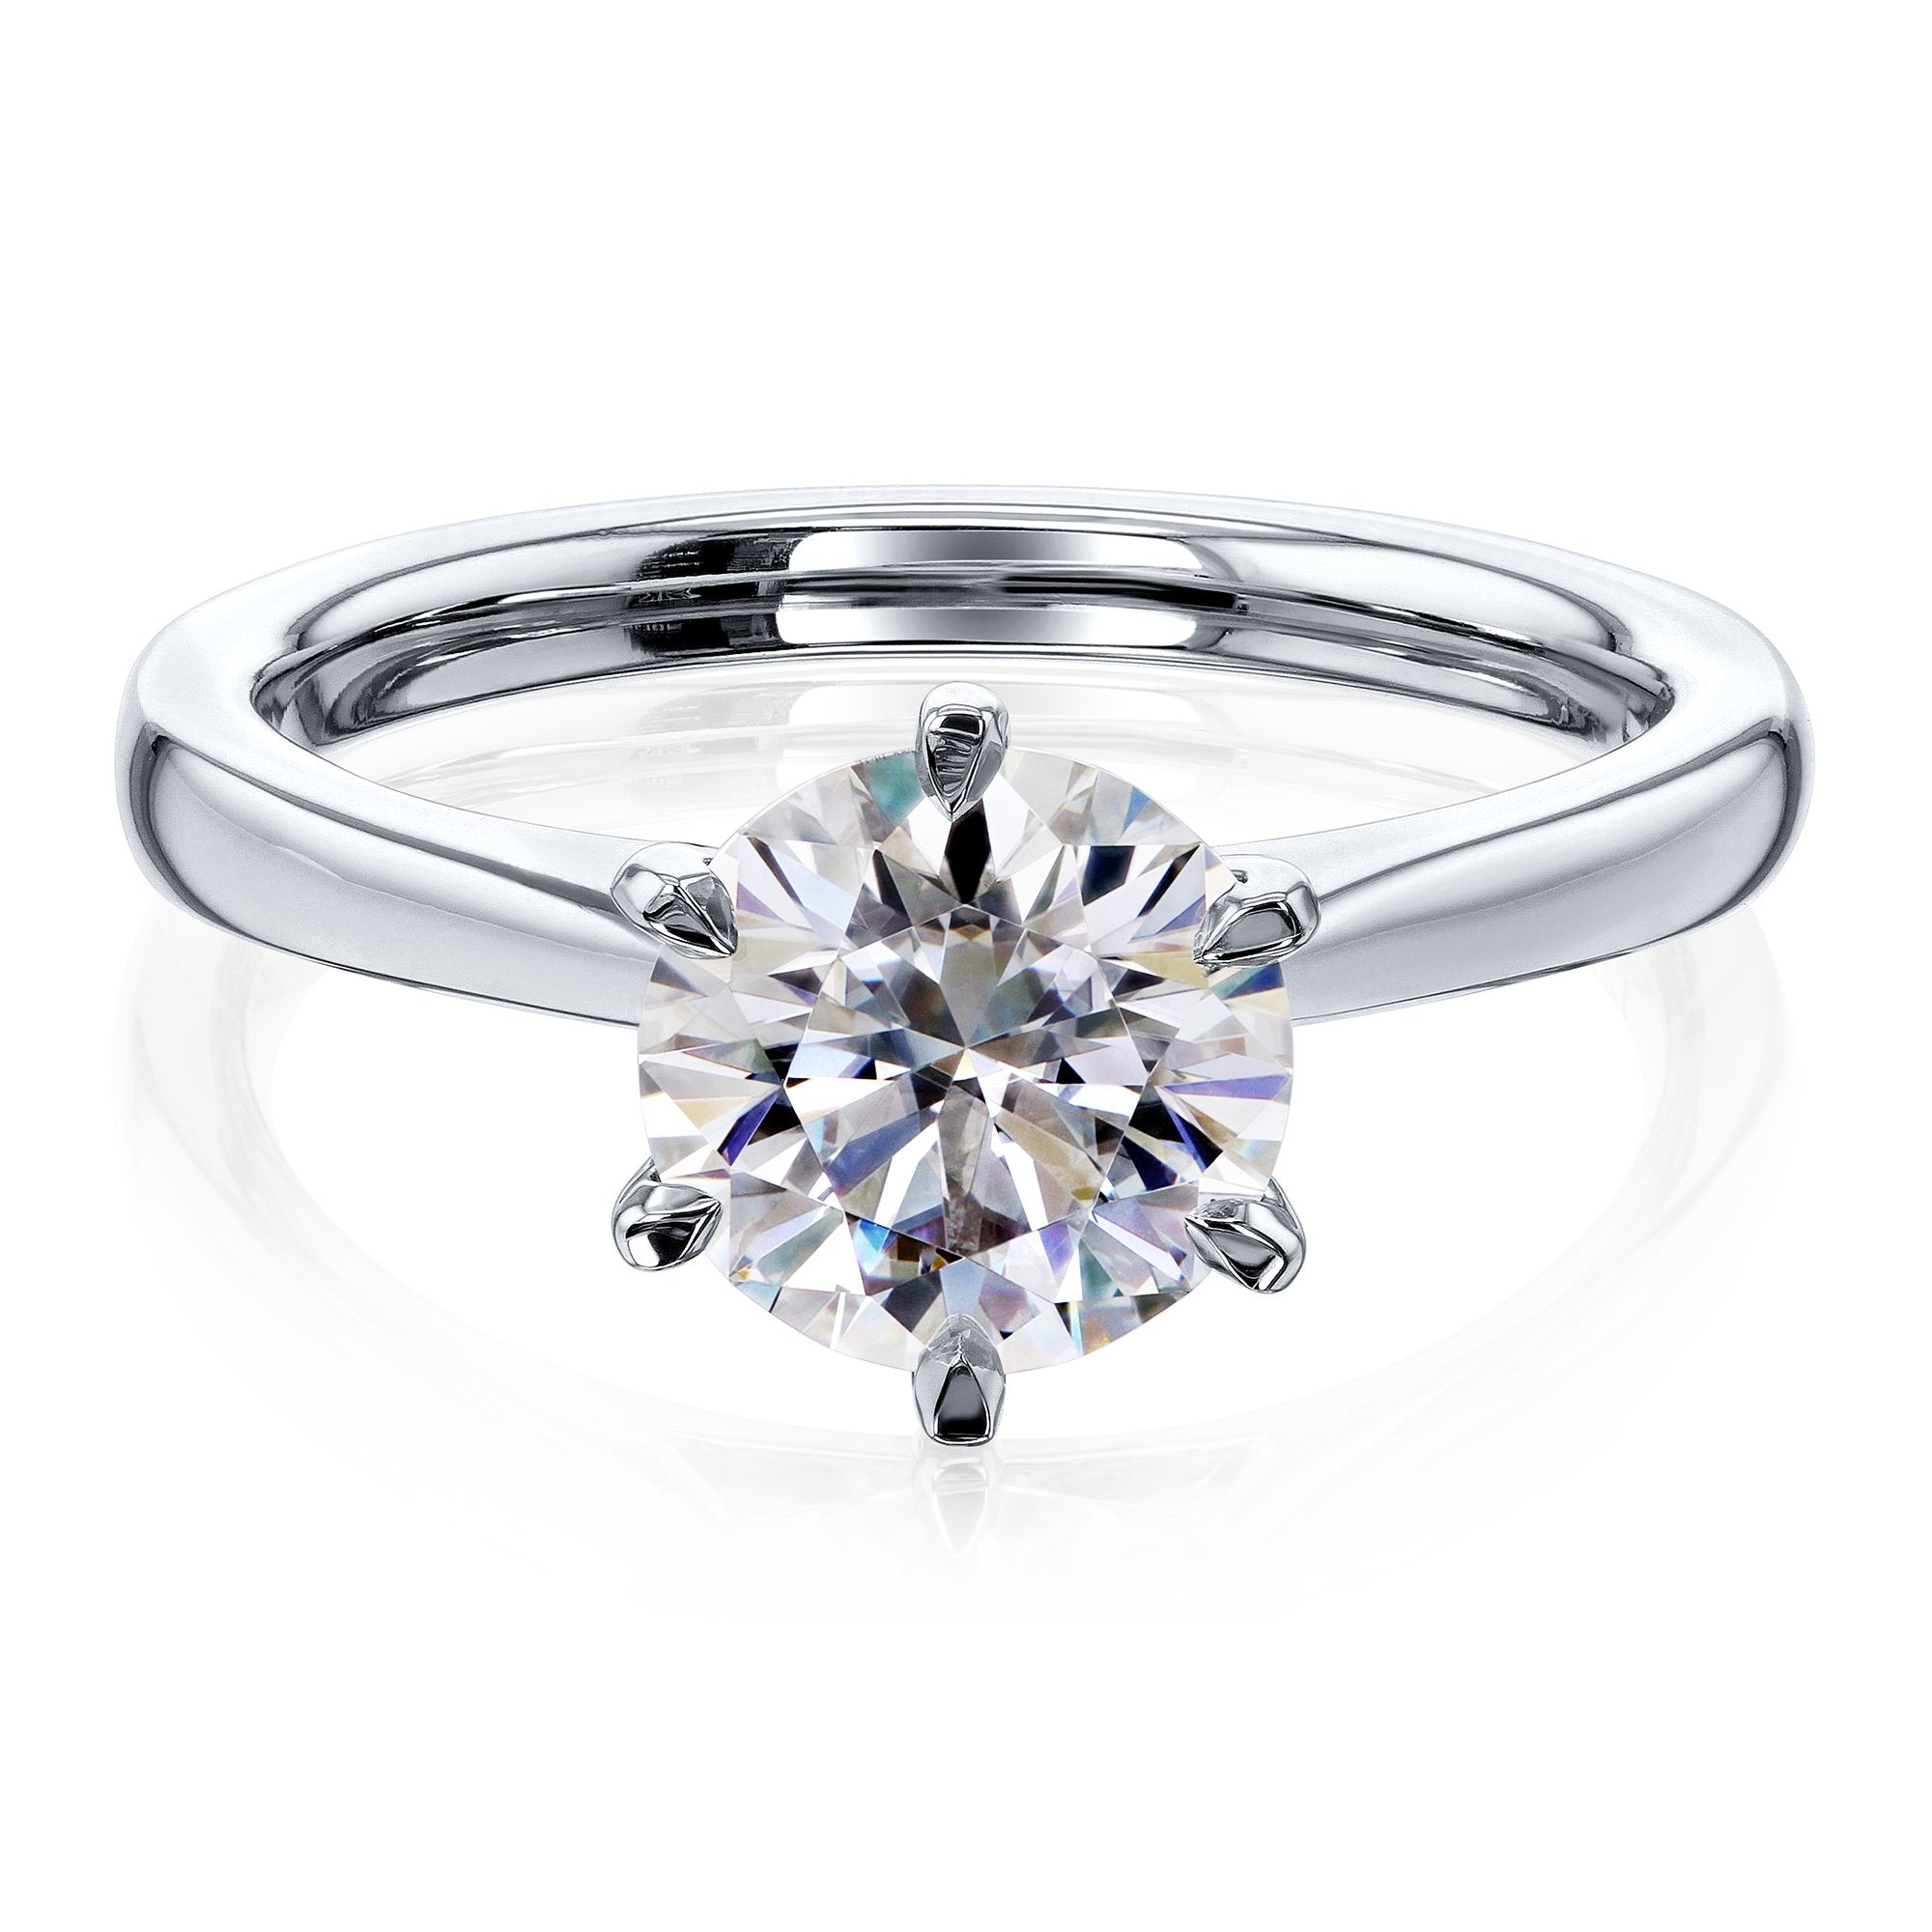 Discounts 1.5ct Round Forever One Moissanite 6-Prong Ring - white-gold 10.0